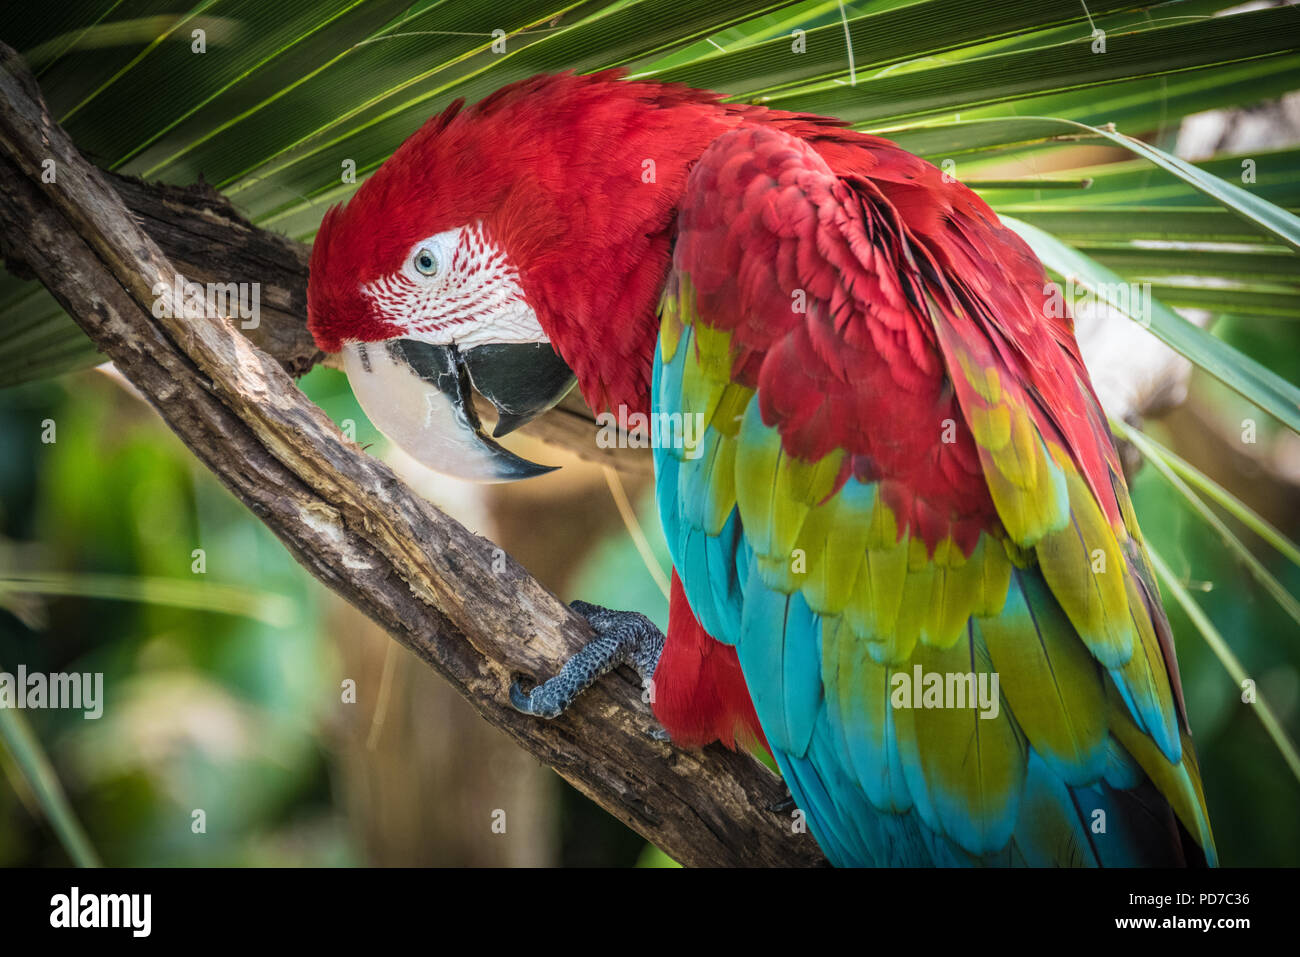 A colorful red-and-green macaw (also known as a green-winged macaw) at the St. Augustine Alligator Farm Zoological Park in St. Augustine, FL. (USA) - Stock Image